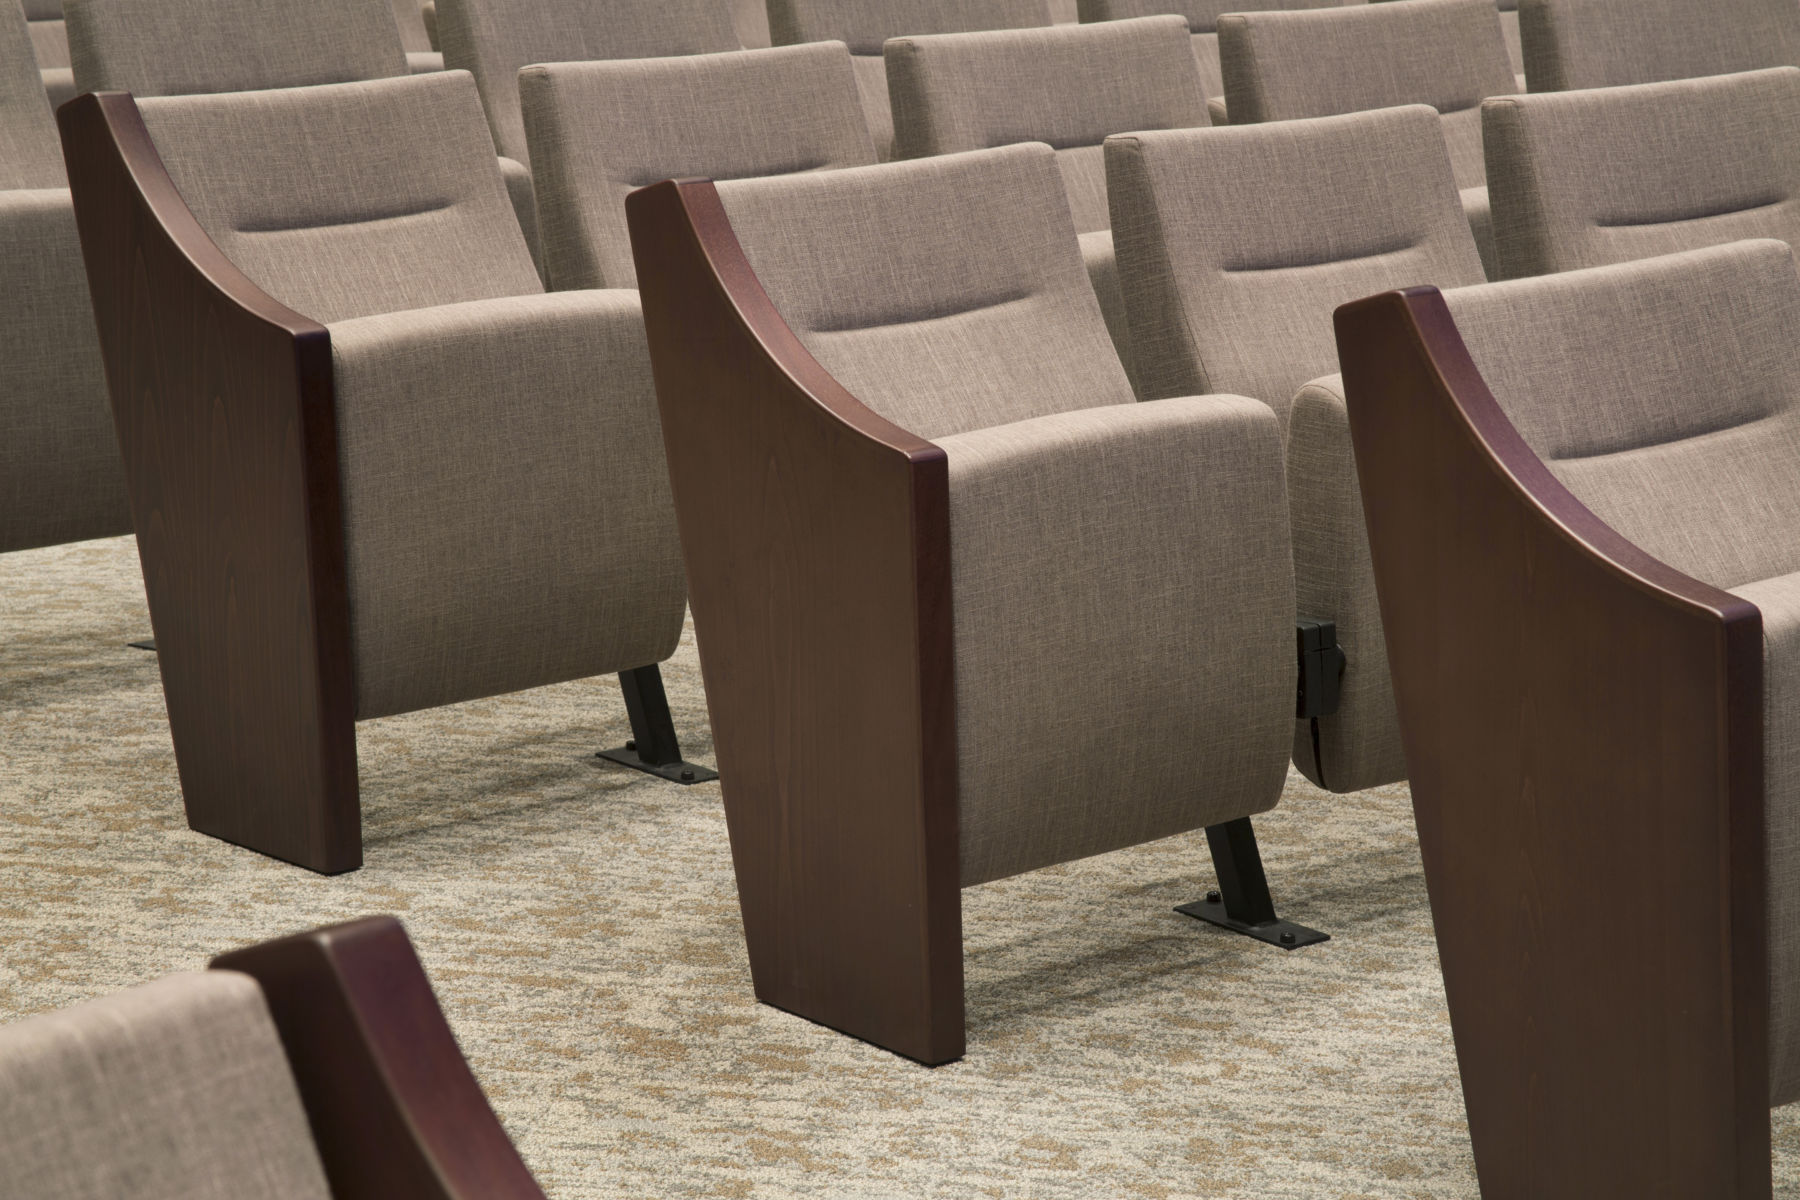 Westside-Baptist-Church-Theater-Seating